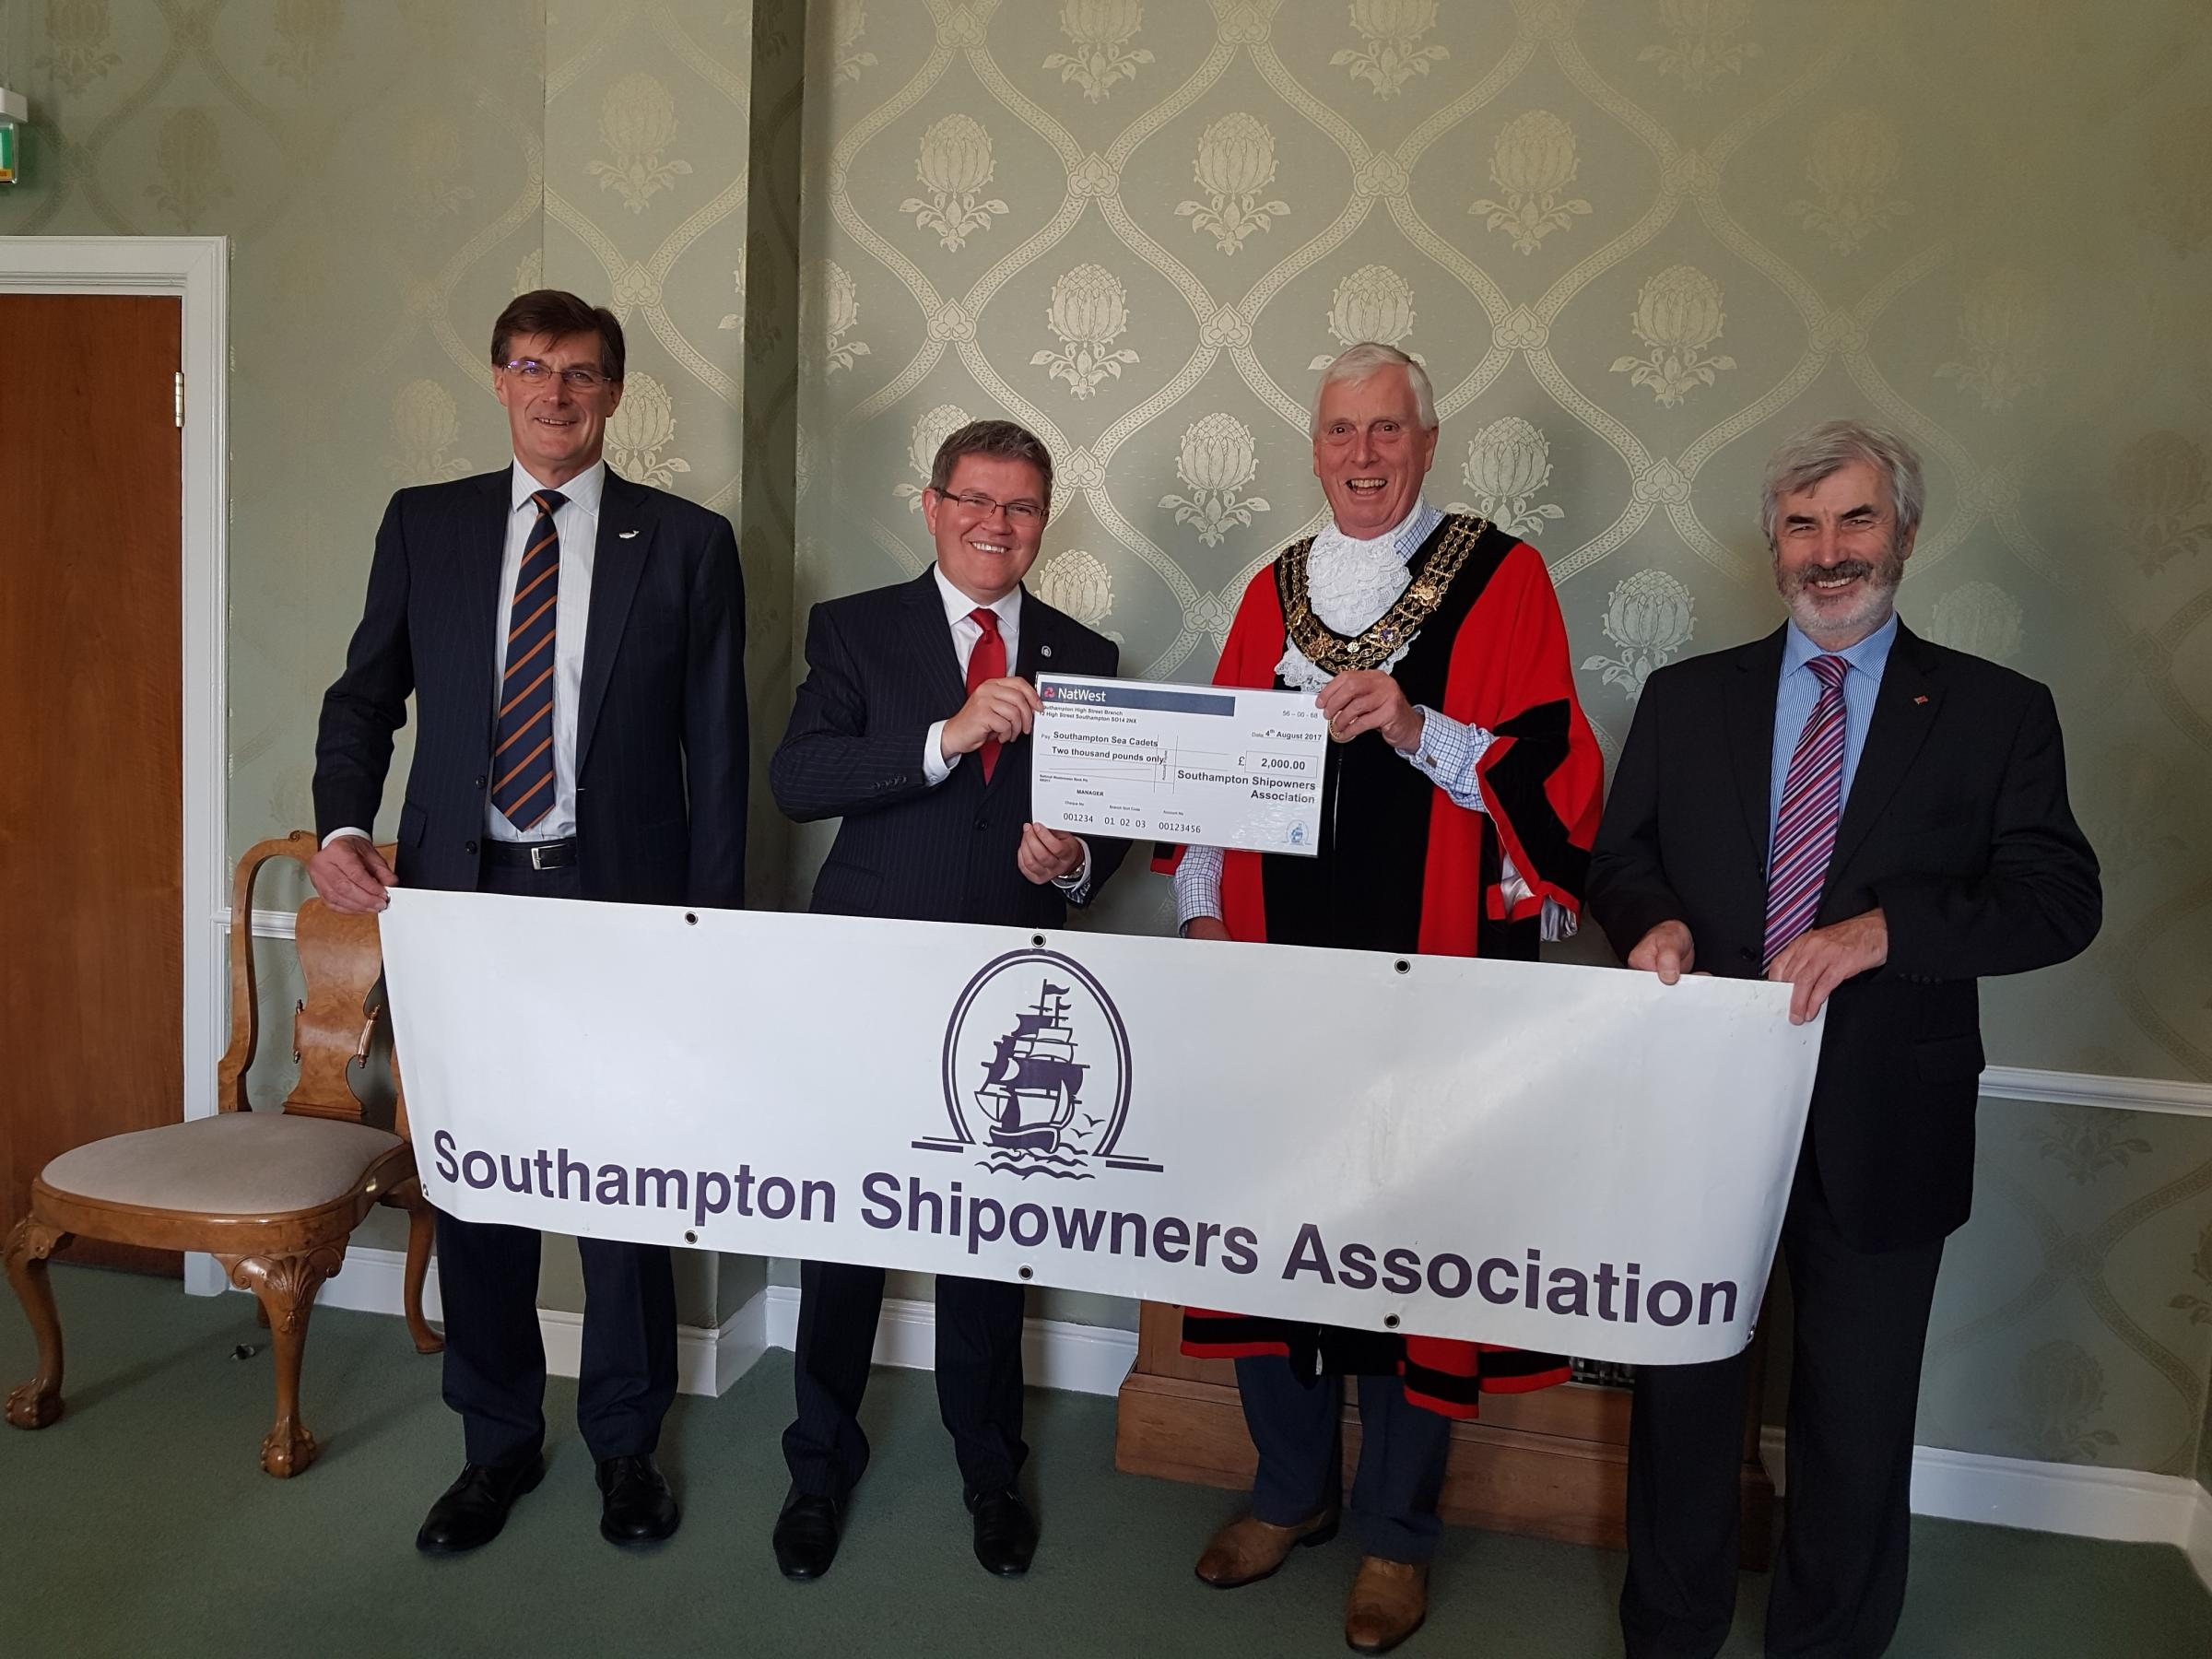 The photo (above) shows a cheque for £2,000 being presented to the Mayor of Southampton, Councillor Les Harris and Captain Andrew Moll of the Sea Cadets, in the presence of Captain Martin Phipps, ABP Southampton Harbour Master and President of the Southa